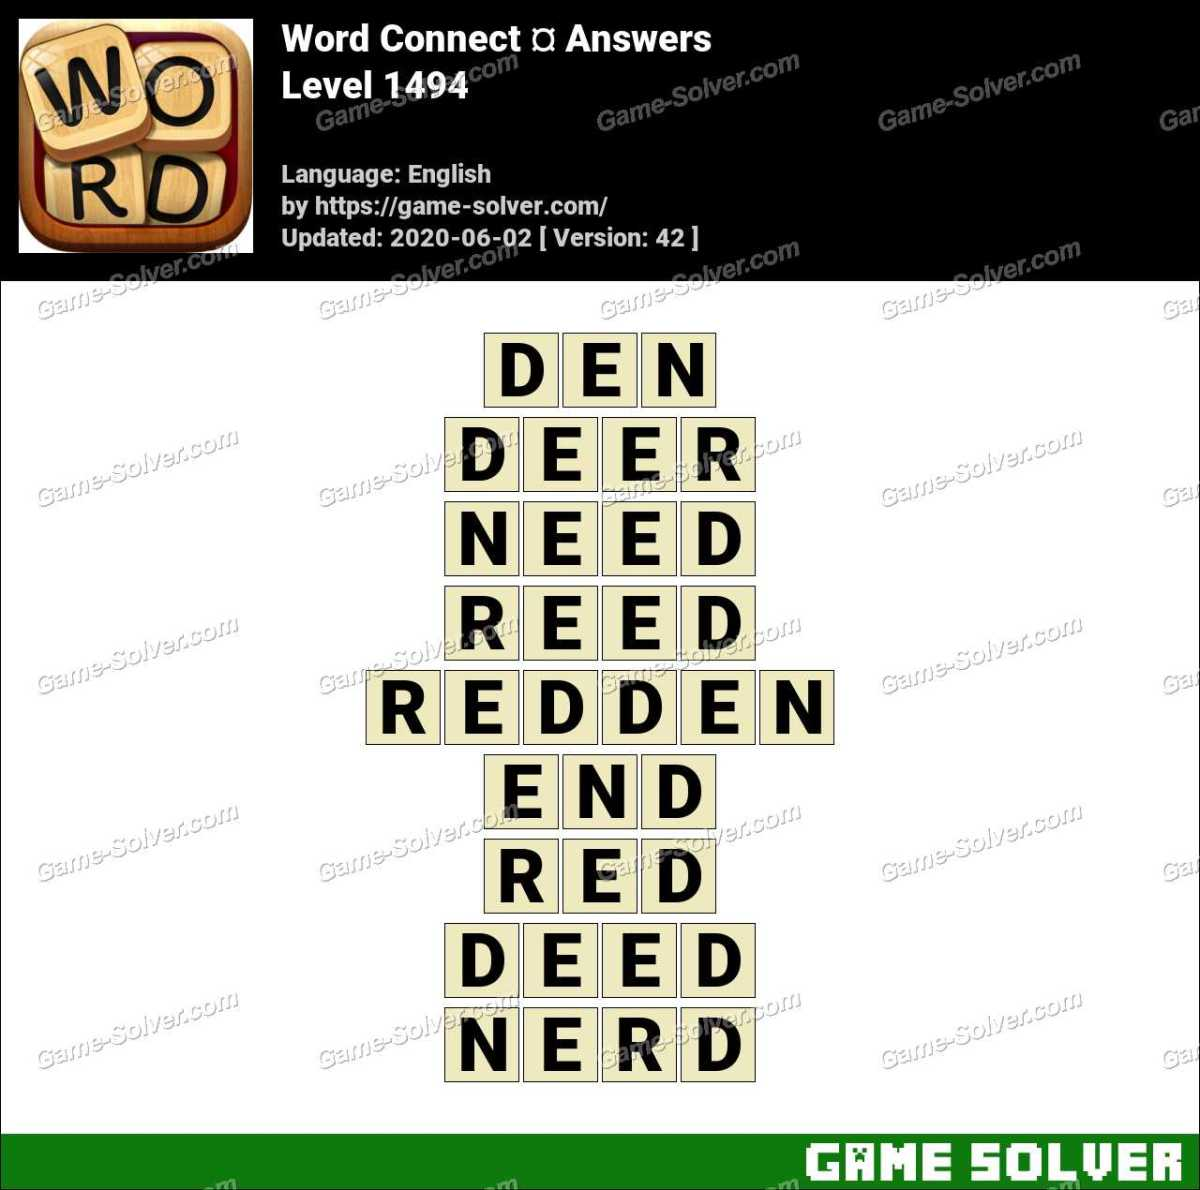 Word Connect Level 1494 Answers